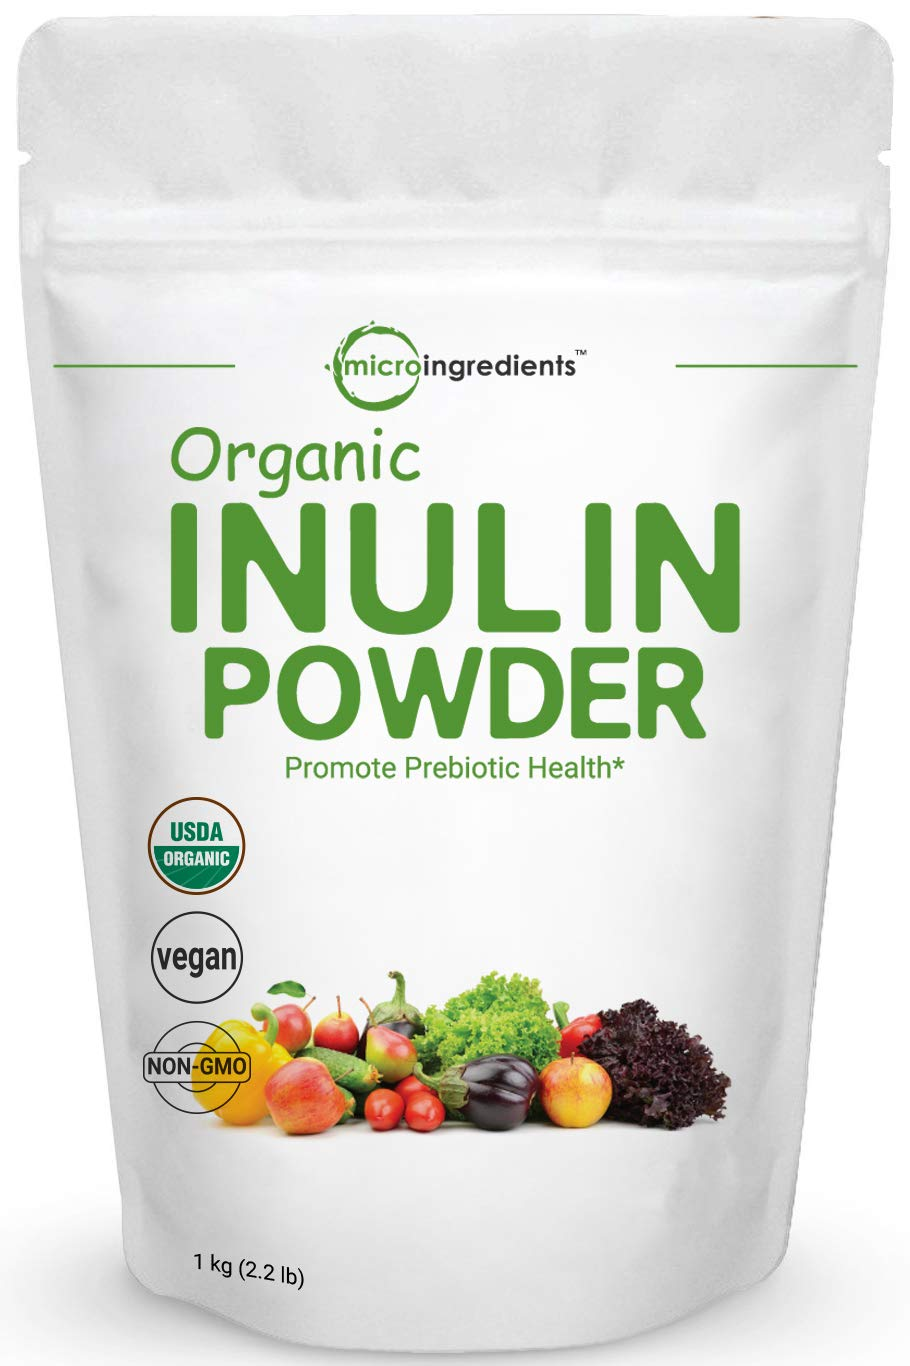 Organic Inulin FOS Powder, Jerusalem Artichoke, 1KG, Prebiotic Intestinal Support, Colon and Gut Health, Natural Fiber for Smoothie and Drinks, No GMOs and Vegan Friendly